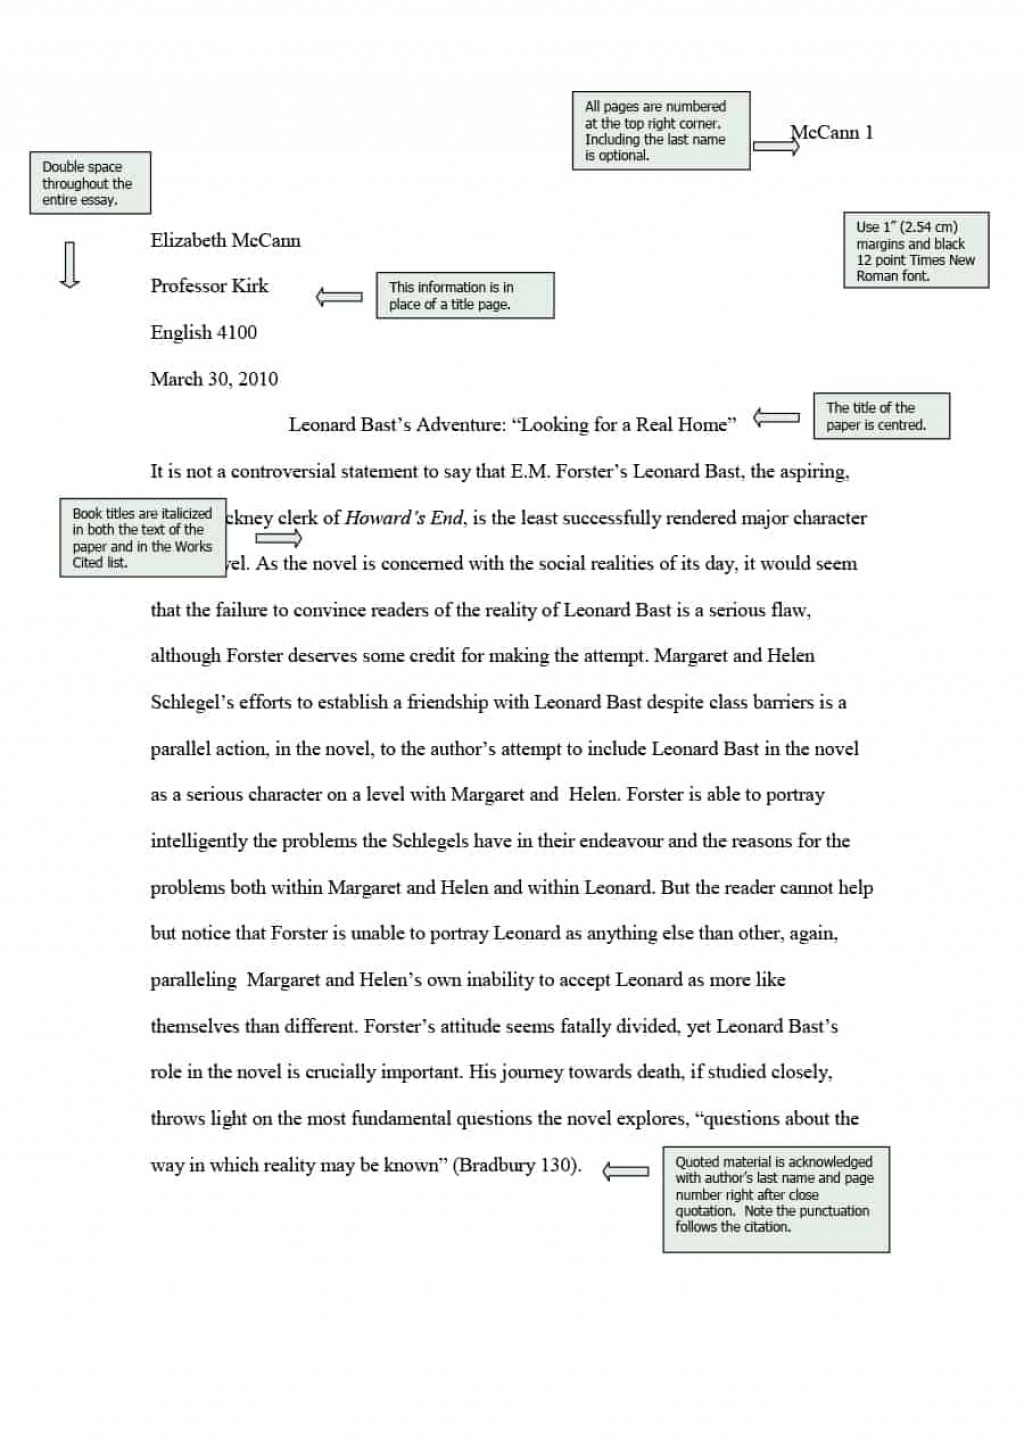 007 How To Cite In An Essay Mla Example Format Template Archaicawful Sources Websites Movies A Paper Large